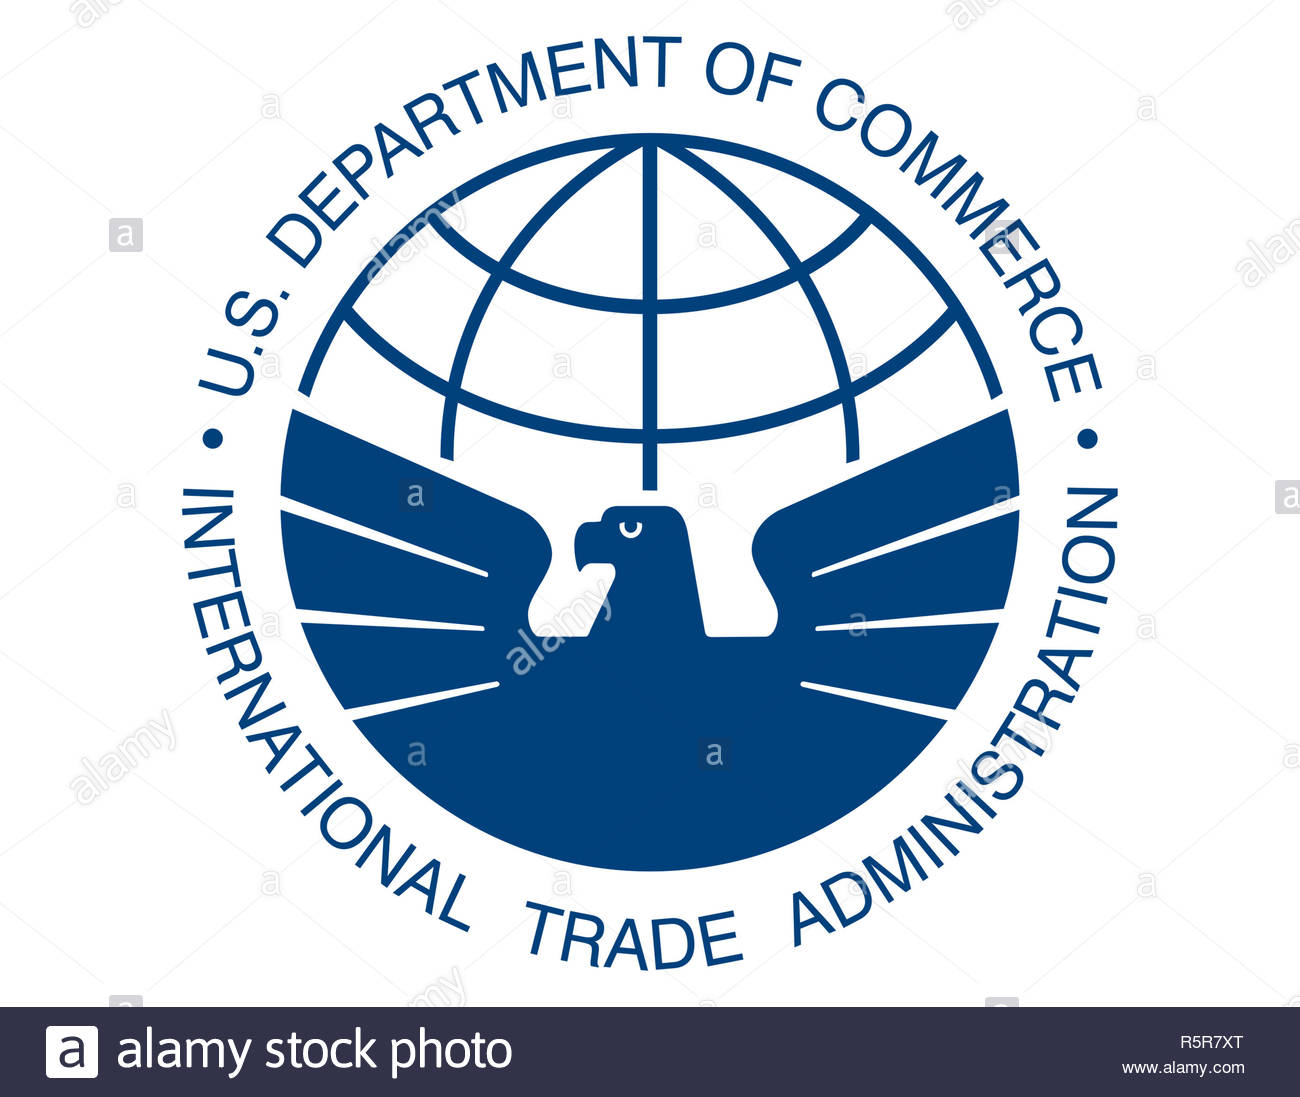 International Trade Administration logo sign - Stock Image